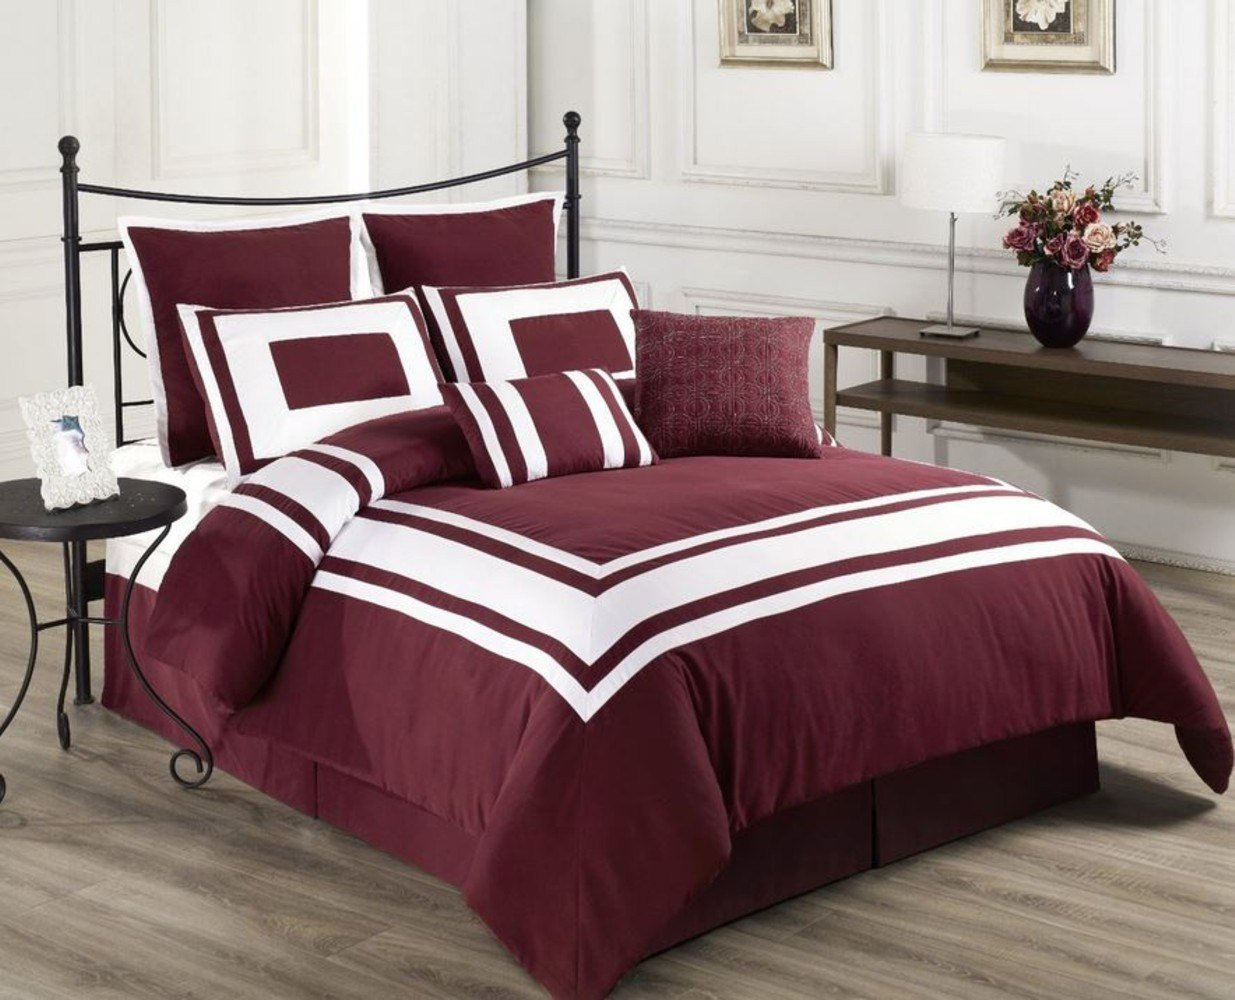 Best Red Comforter Set 8 Pcs Burgundy W White And 50 Similar Items With Pictures